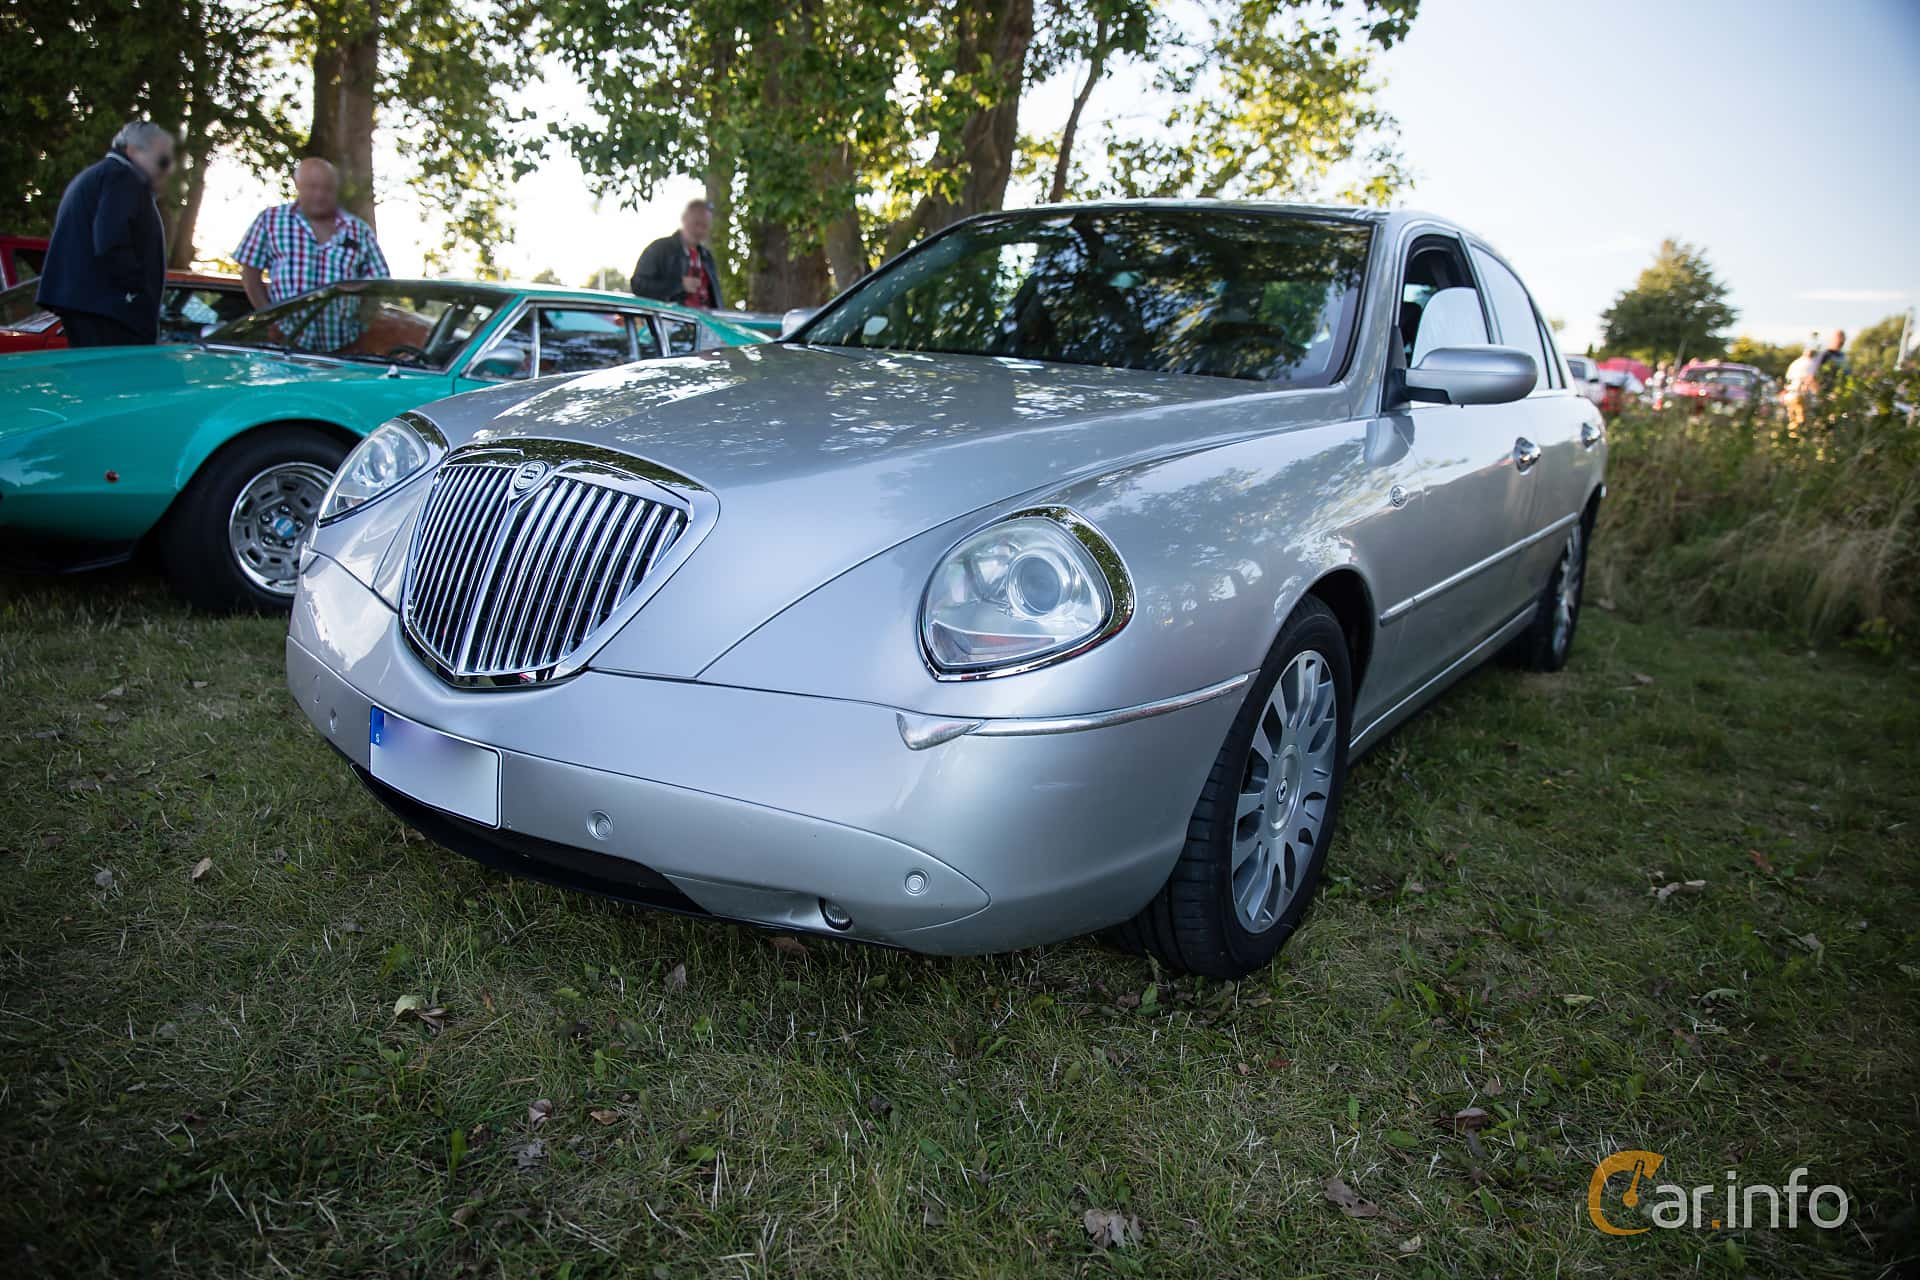 lancia thesis 3.2 v6 comfotronic executive